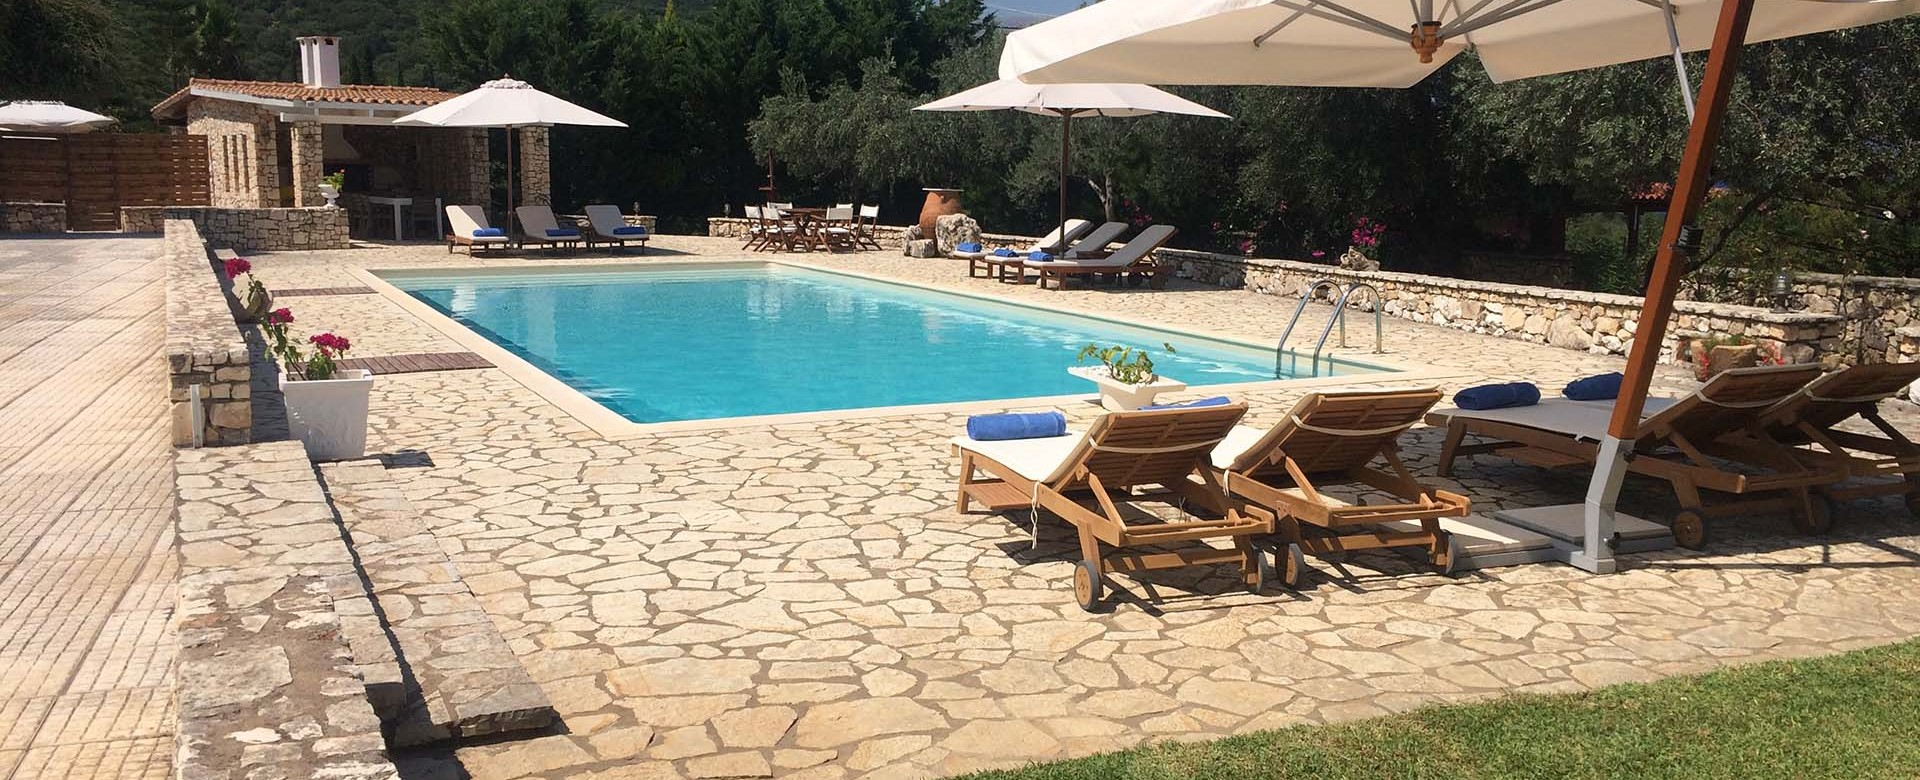 Pool sun loungers and mountain views at Casa Angela, Melissani Apartments, Karavomilos, Kefalonia, Greek Islands